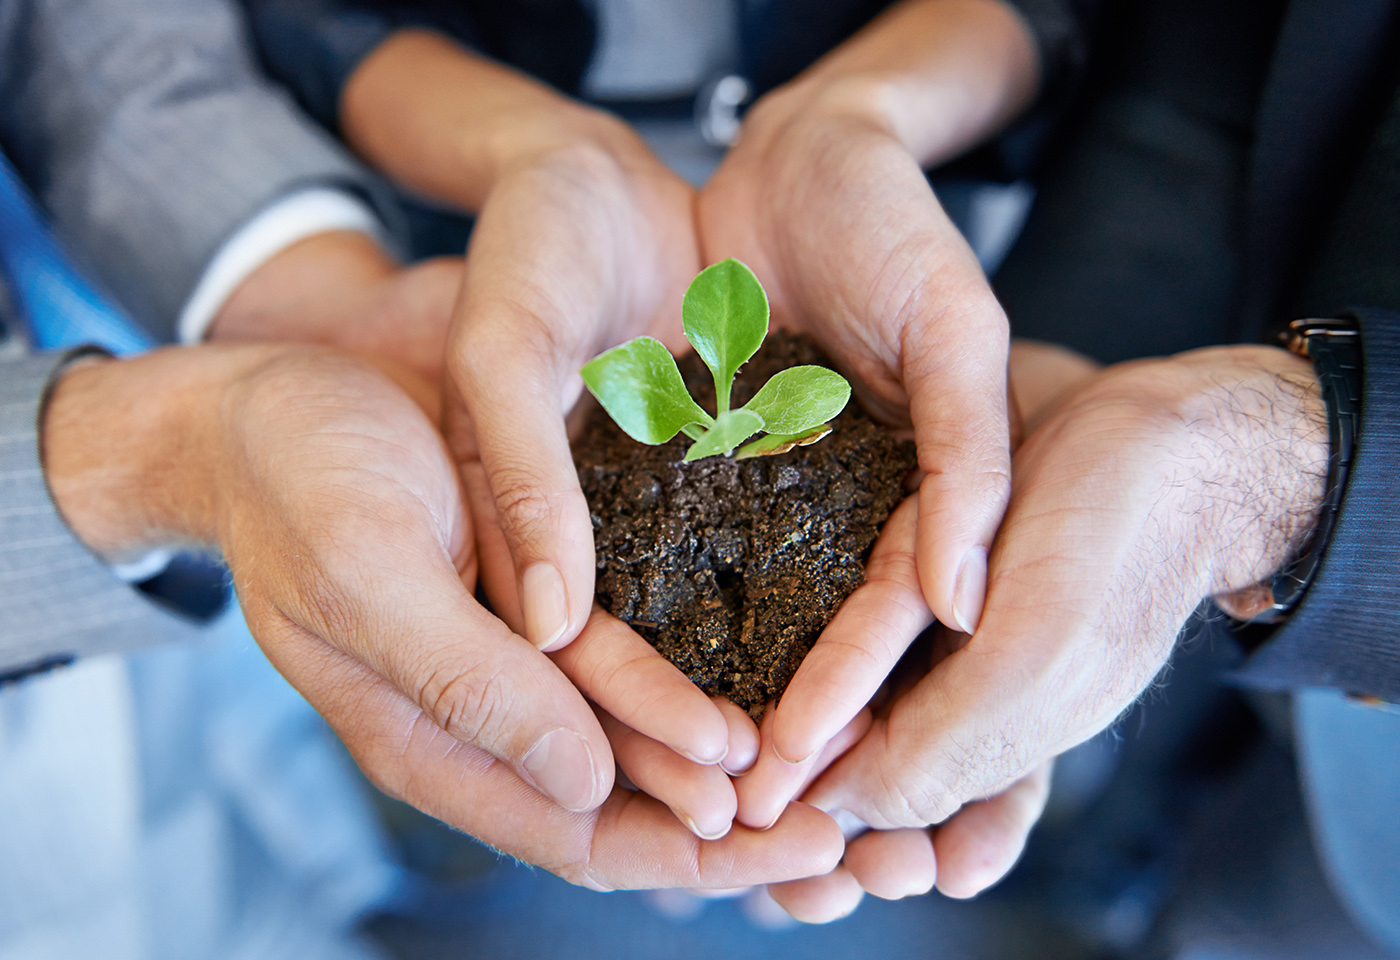 People with hands together holding soil and plant